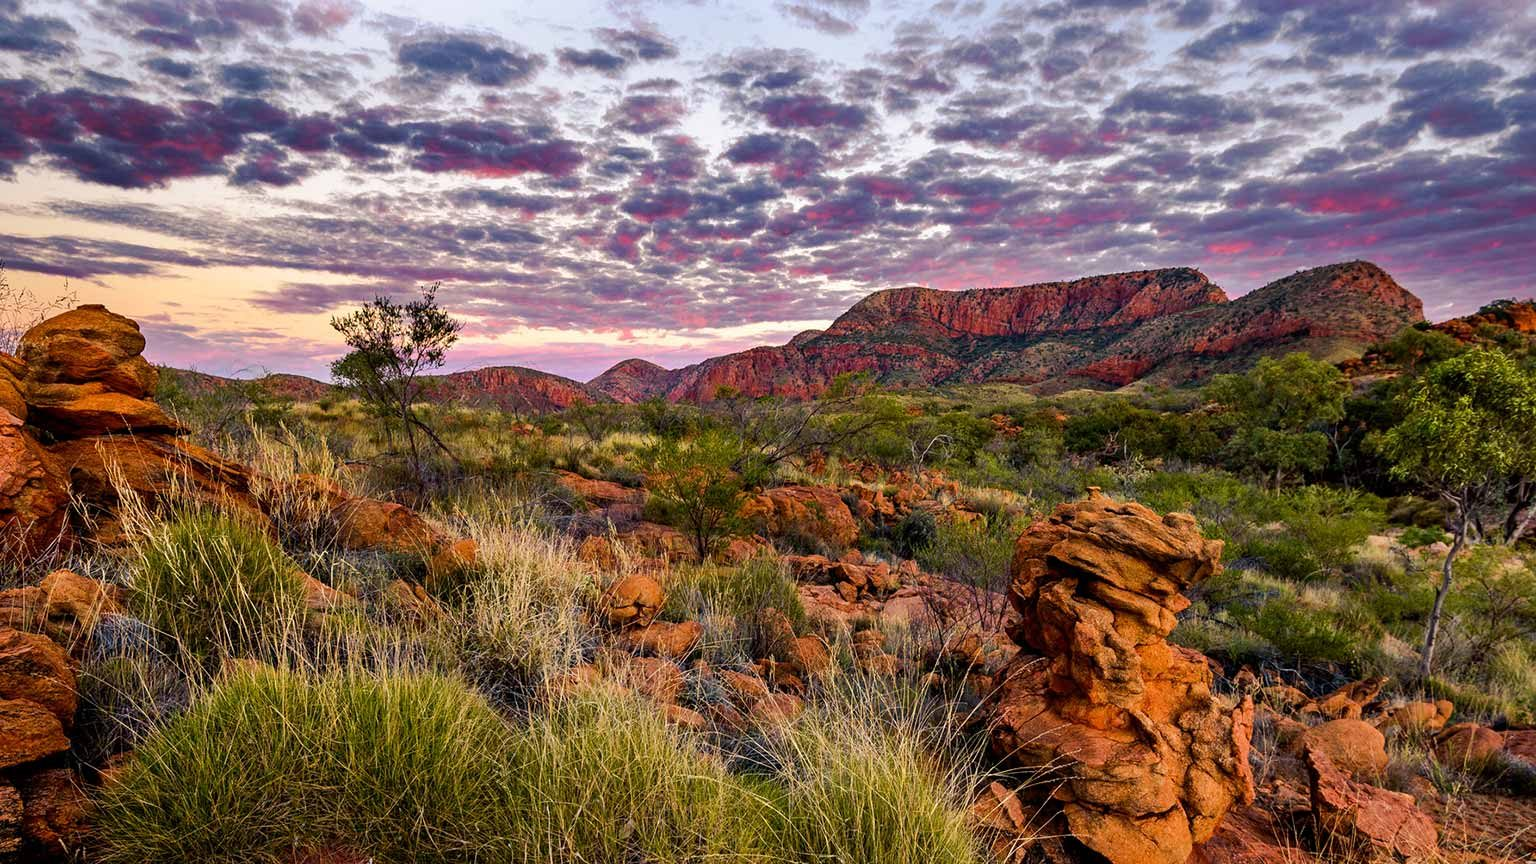 MacDonnell Ranges near Alice Springs, Northern Territory